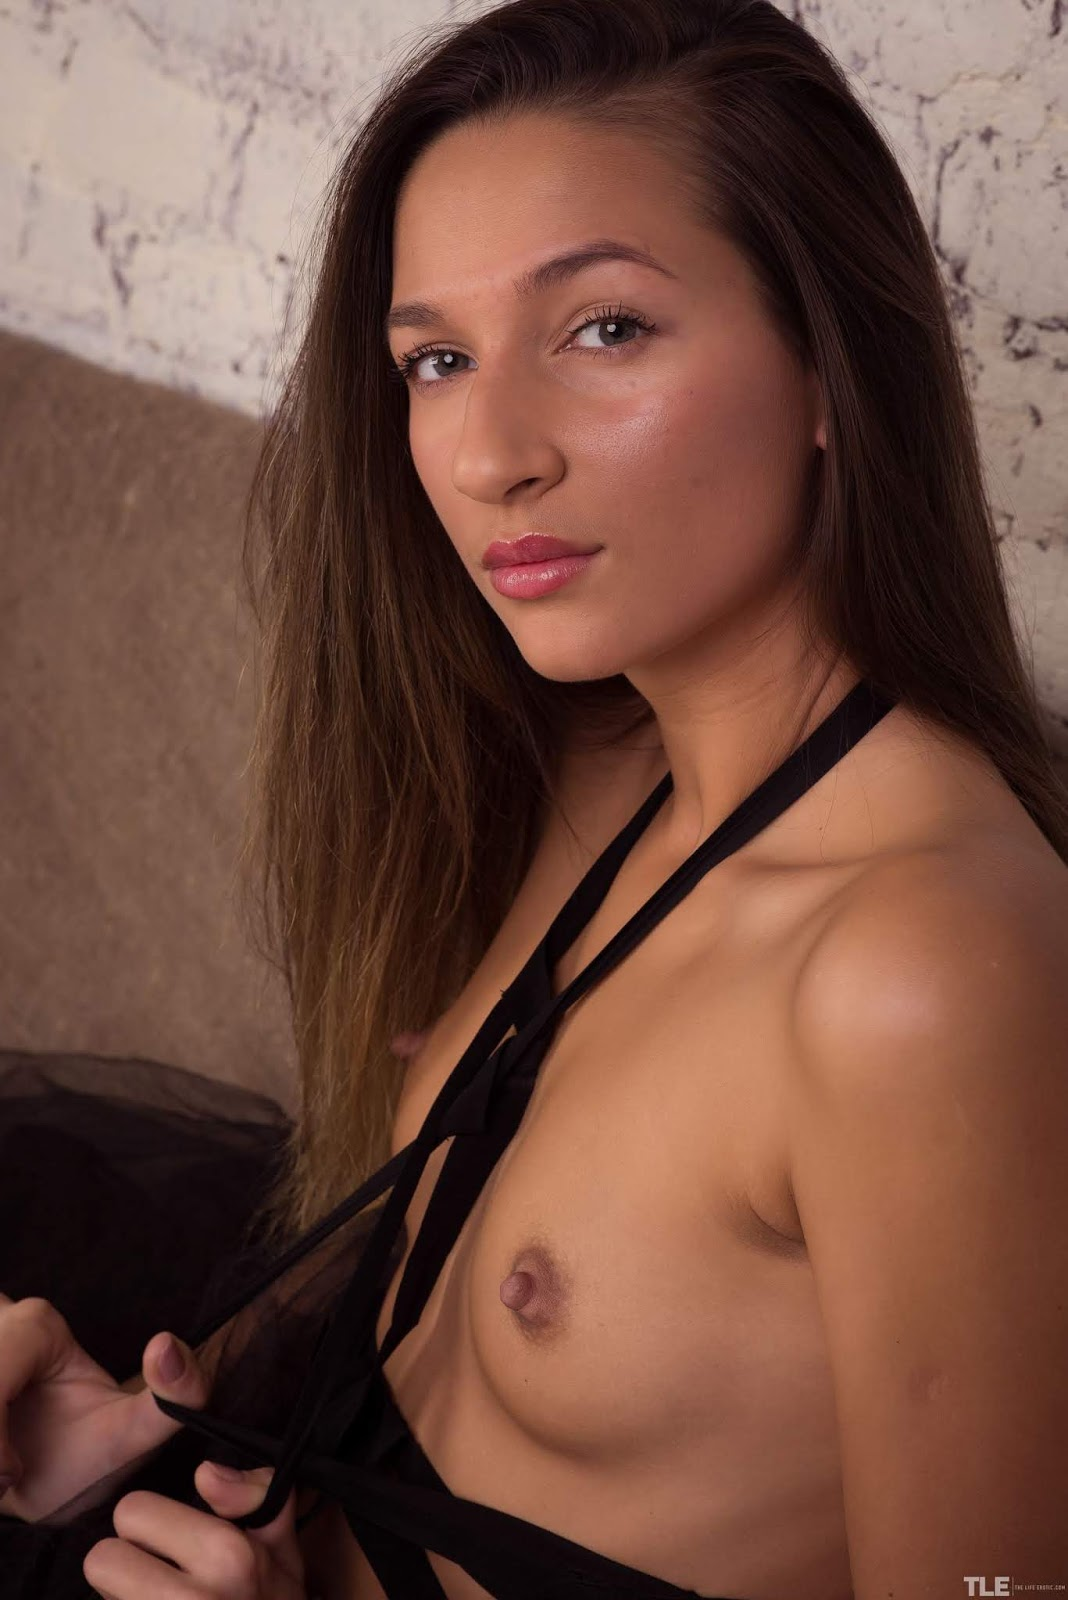 Kenya - TheLifeErotic - In the Dark - Pussy Spreading Pictures